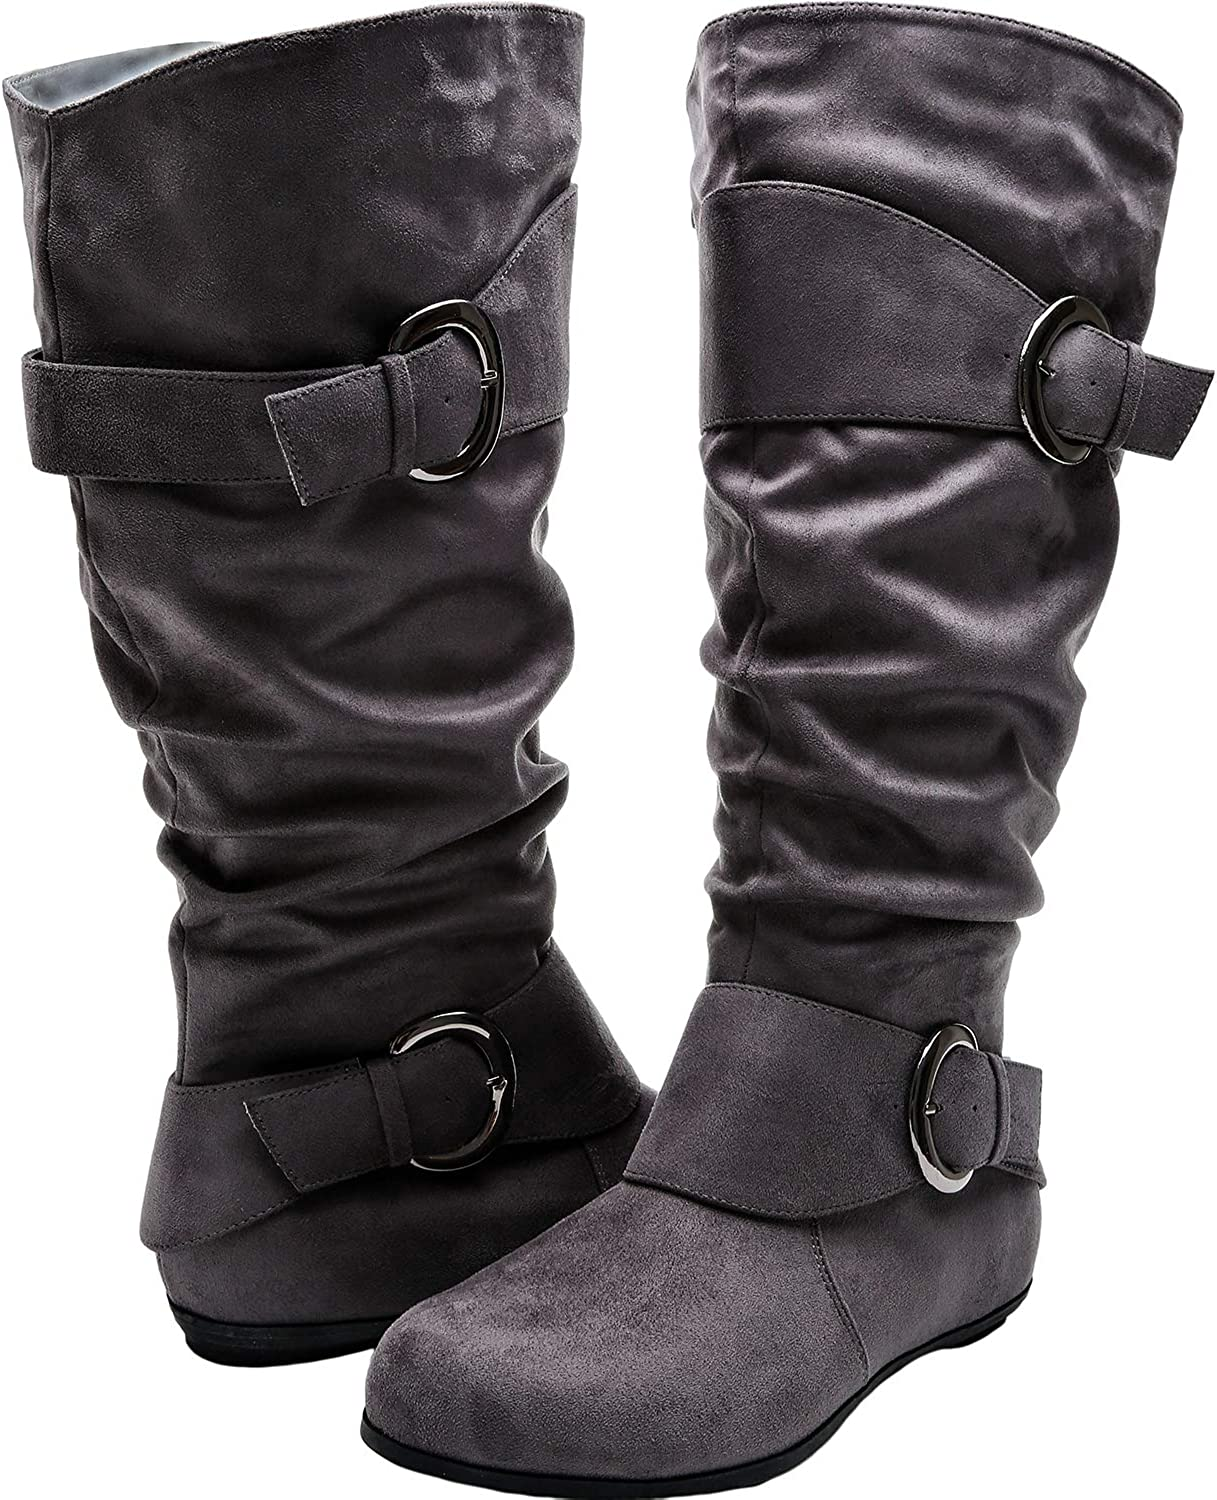 Aukusor Women's Wide Width Mid Calf Boots - Buckle Detail Elastic Zipper Slip on Winter Boots.(Wide Calf)